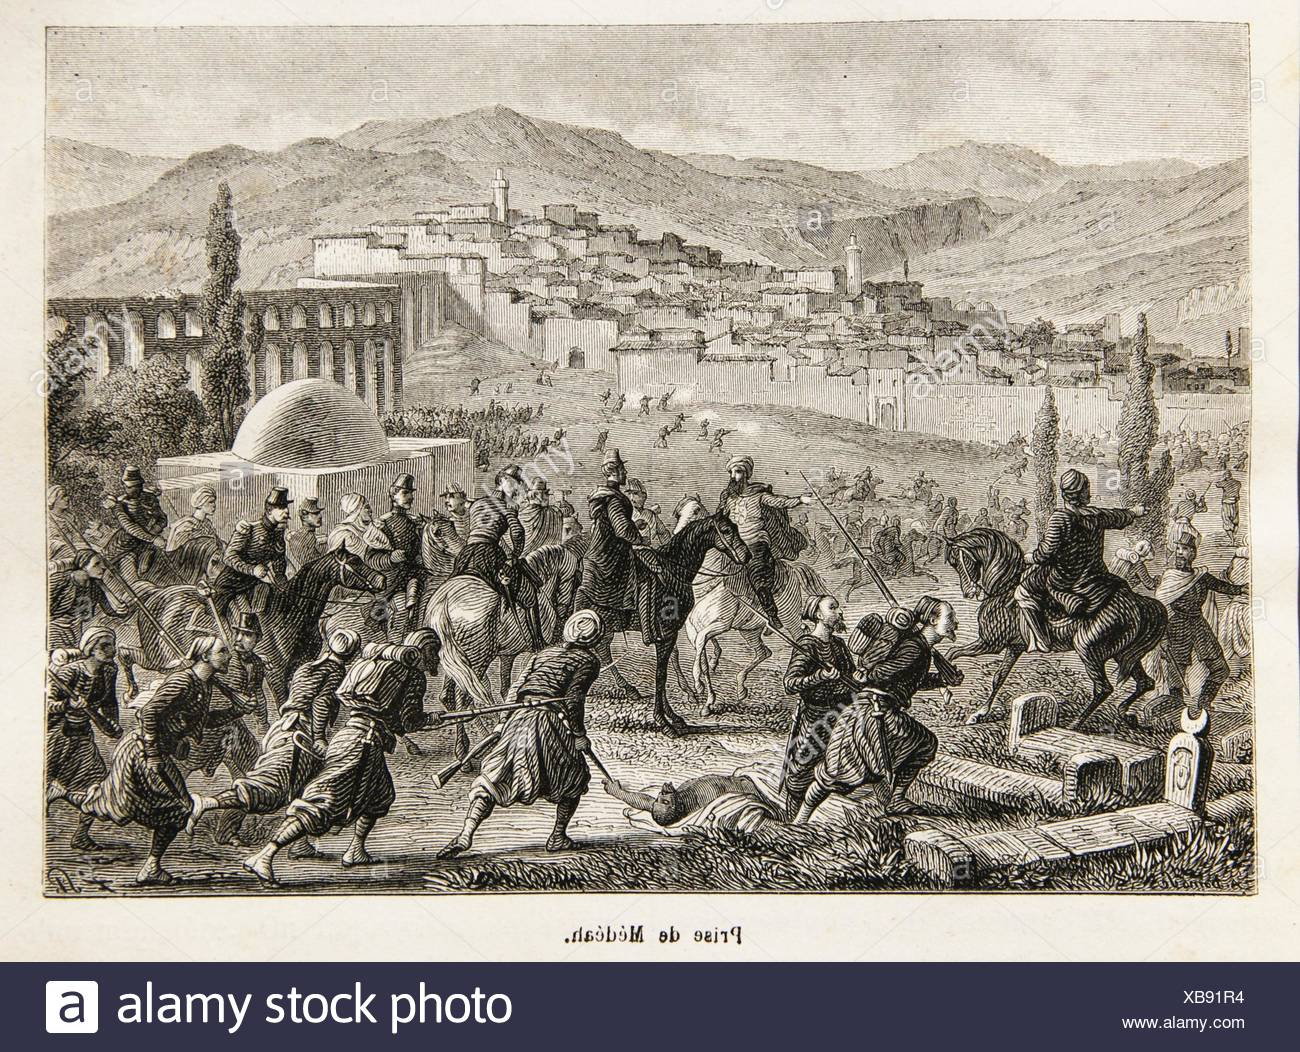 Capture of Medea, French troops during the colonization of Algiers, 19th century - Stock Image